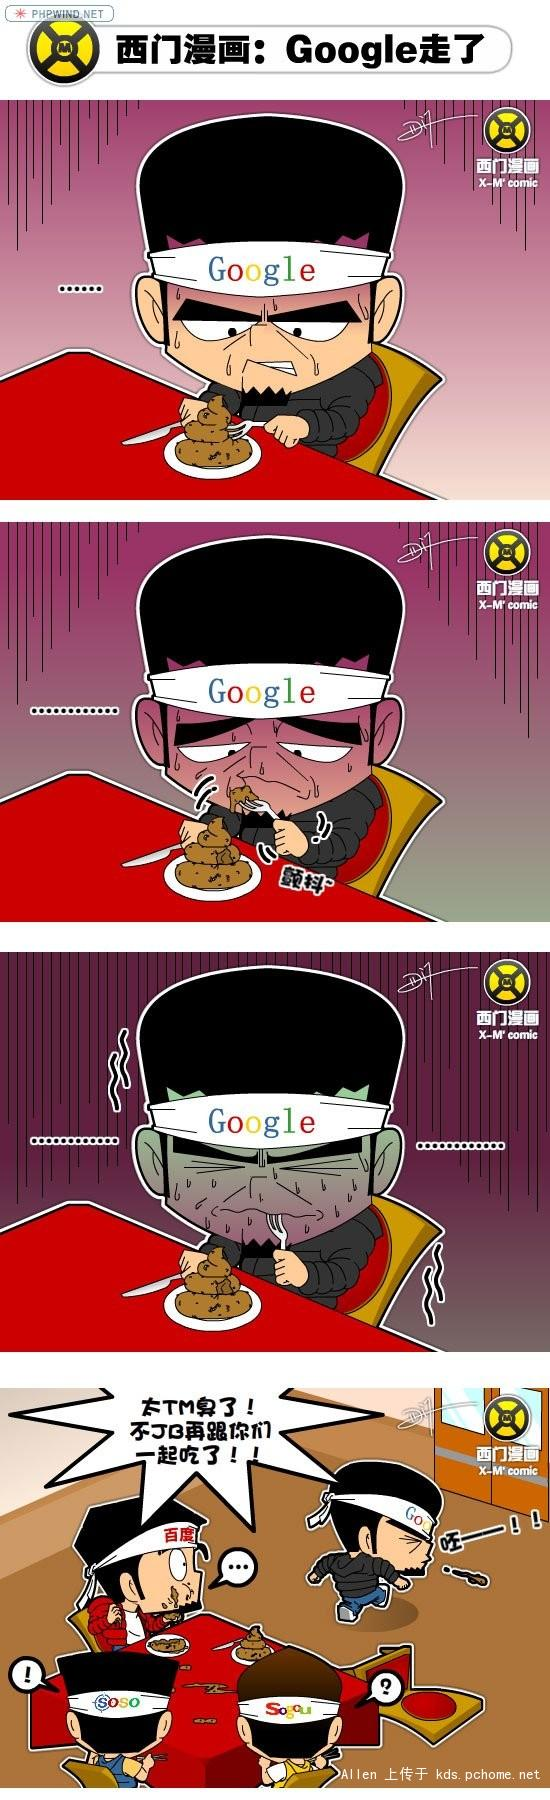 Google refuses to eat shit anymore, leave a table with Baidu, Soso, and Sogou (Chinese search engines).